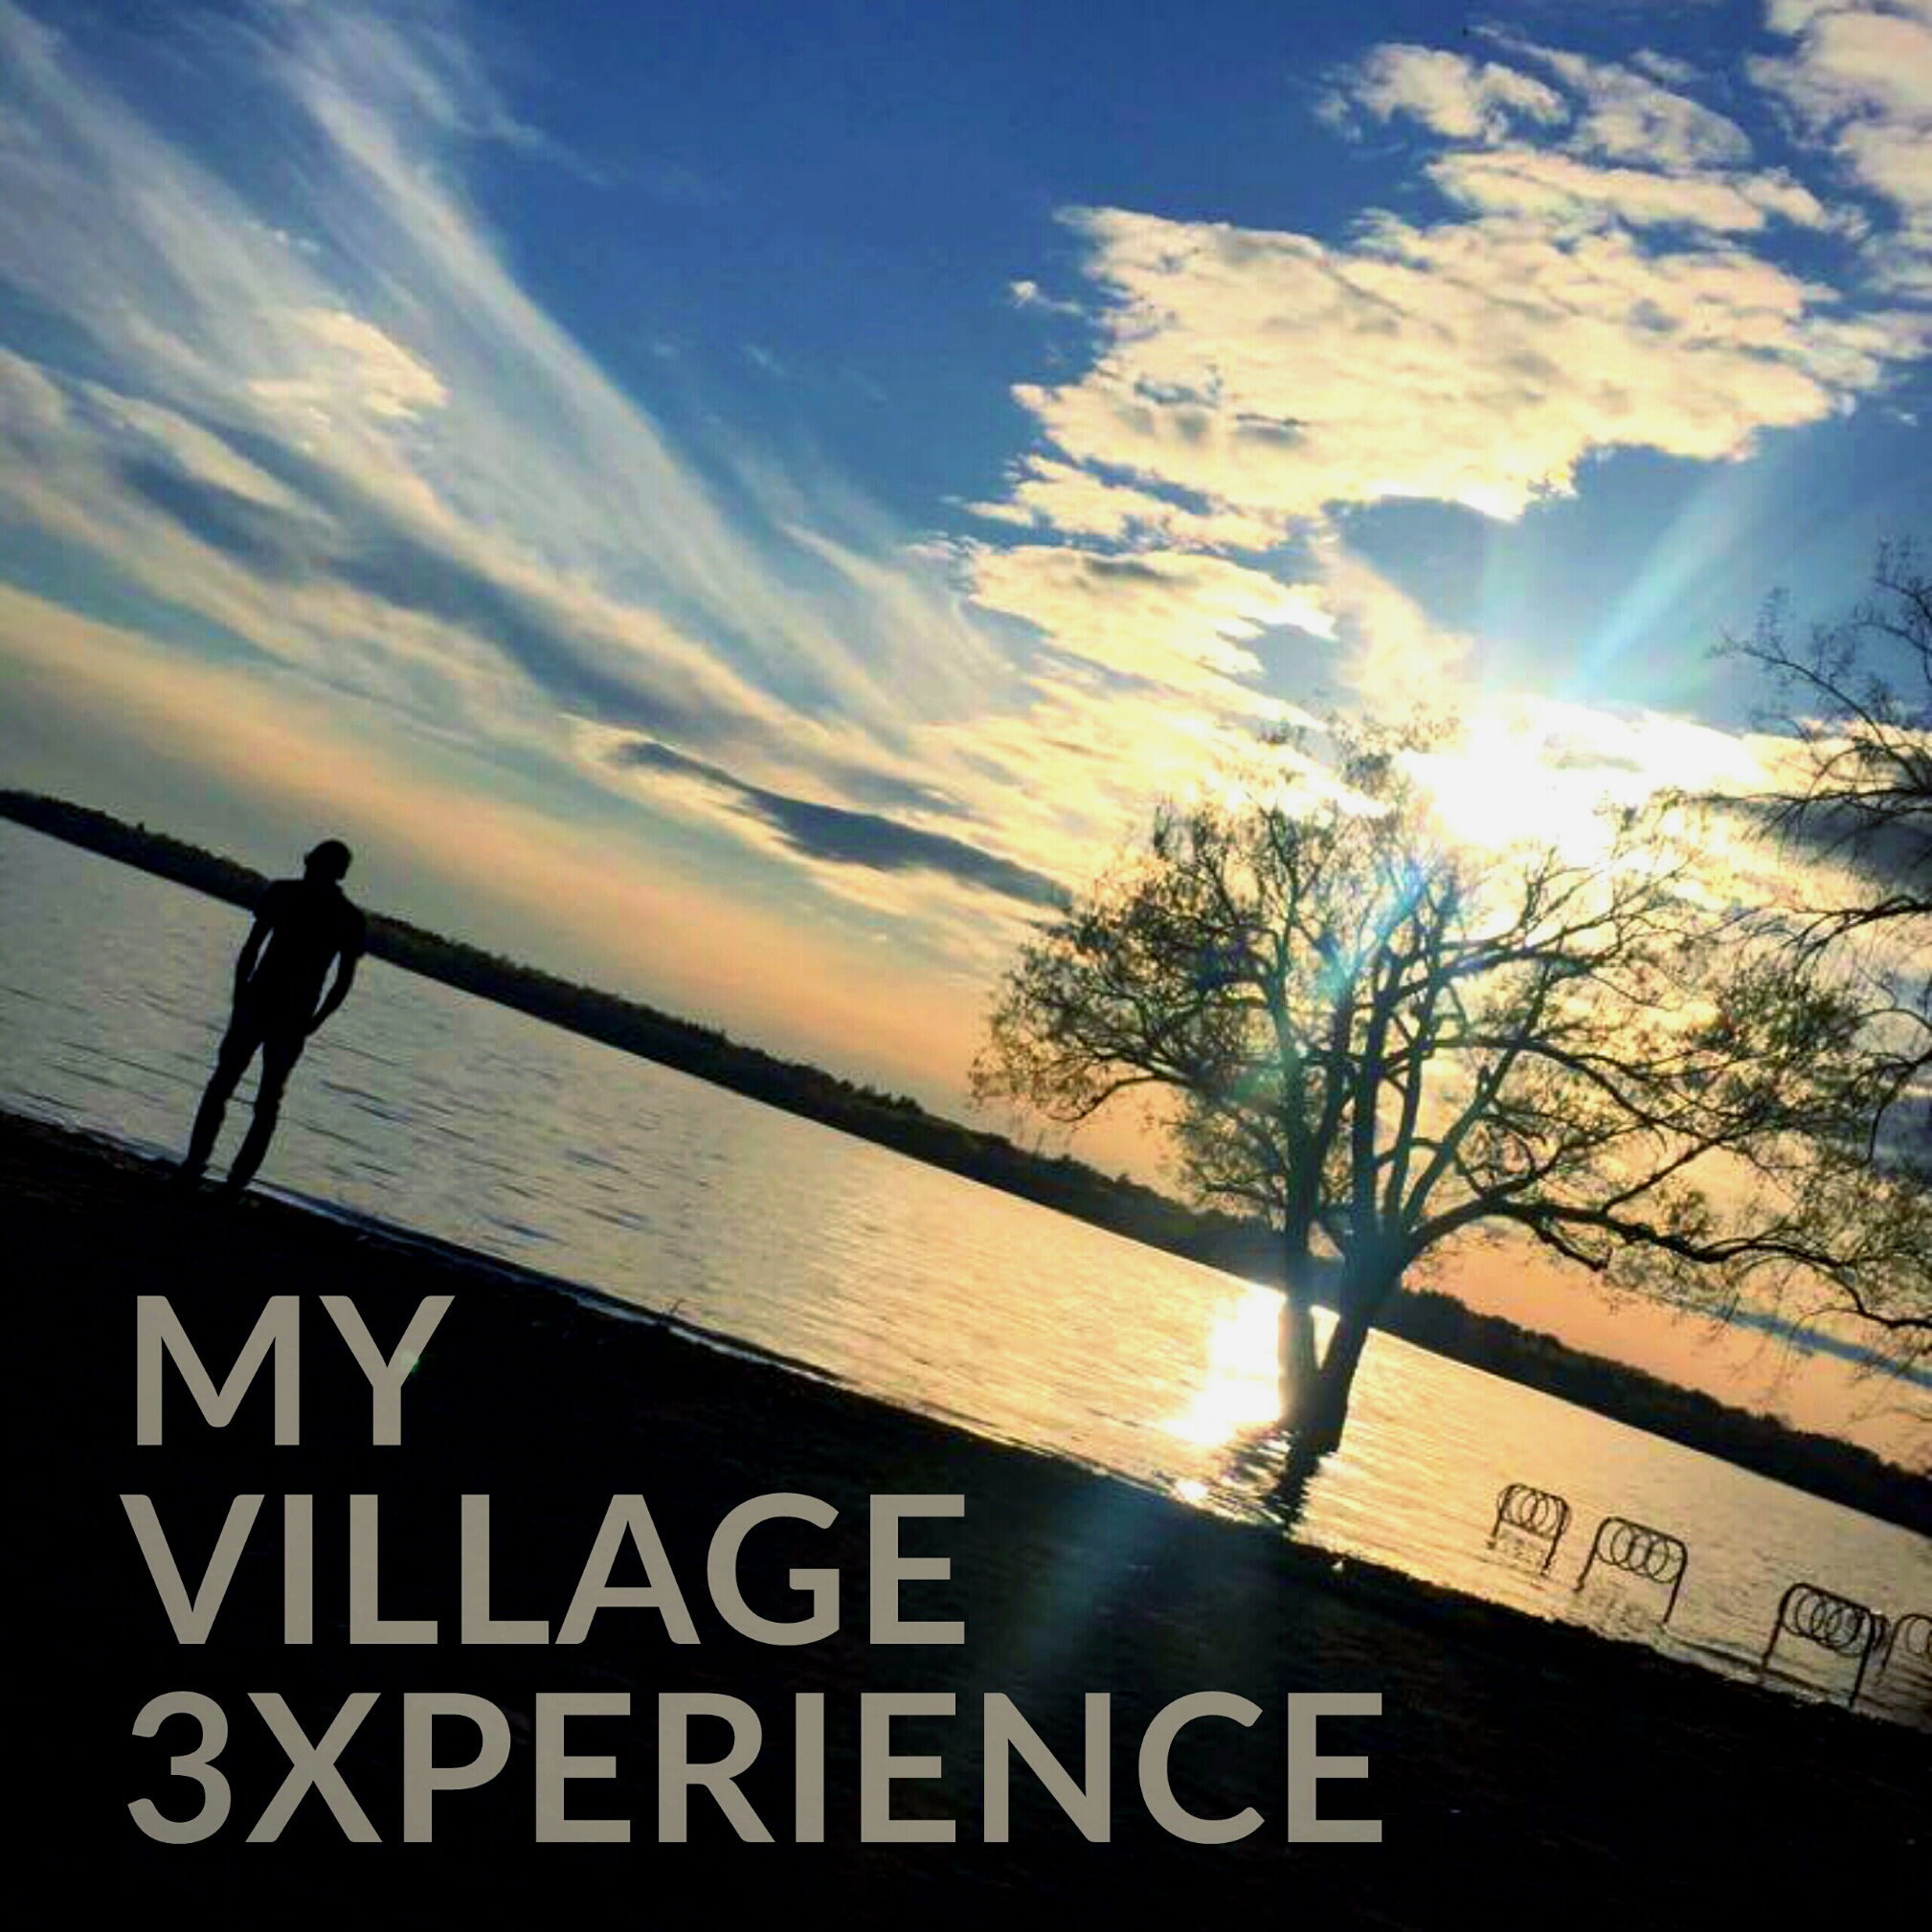 My Village 3xperience